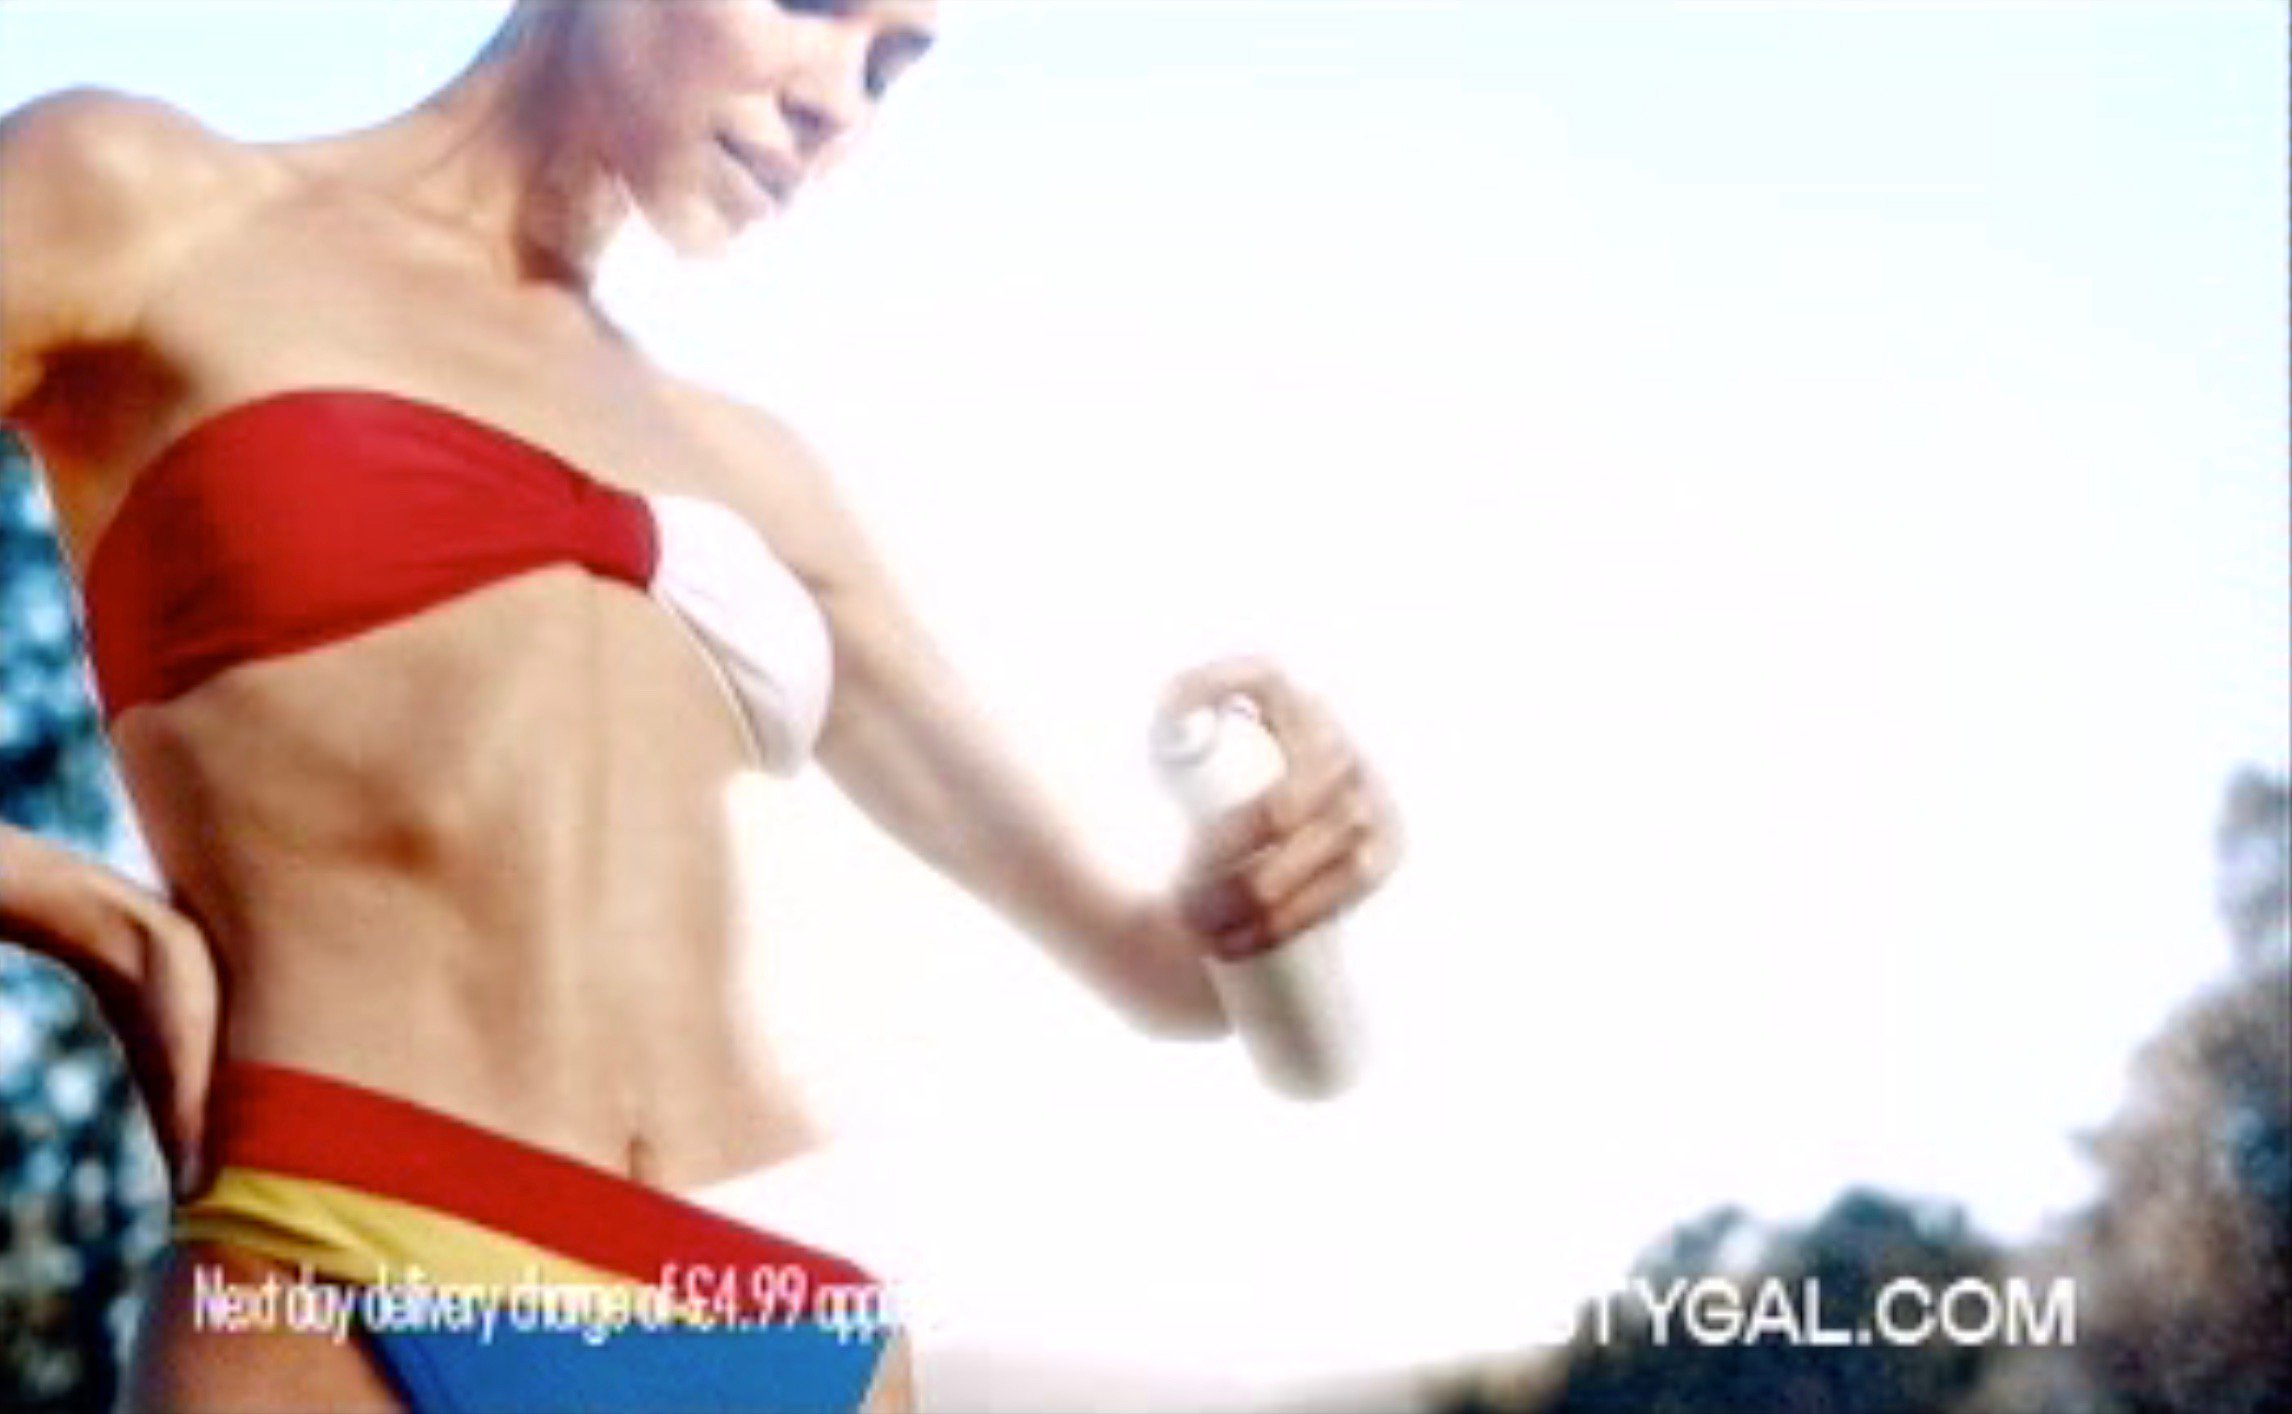 STIAN_NASTY GAL AD BAN3_IMAGE003 A TV AD for a clothing firm called Nasty Gal has been banned from being aired again for starring a 'too skinny' model showing off her rib cage. The ads for the womenswear firm showed the model posing in a string of outfits as well as playing tennis in a yellow swimsuit and golf in a red skirt and top. Three various ads of various lengths were aired in June this year, notching up 22 complaints from viewers, who said the model looked 'unhealthily thin' and that the ads were socially irresponsible. Bosses at the Advertising Standards Authority (ASA) banned the ads, saying they were irresponsible. STIAN ALEXANDER 07528 679198 Provider: nastygal.com